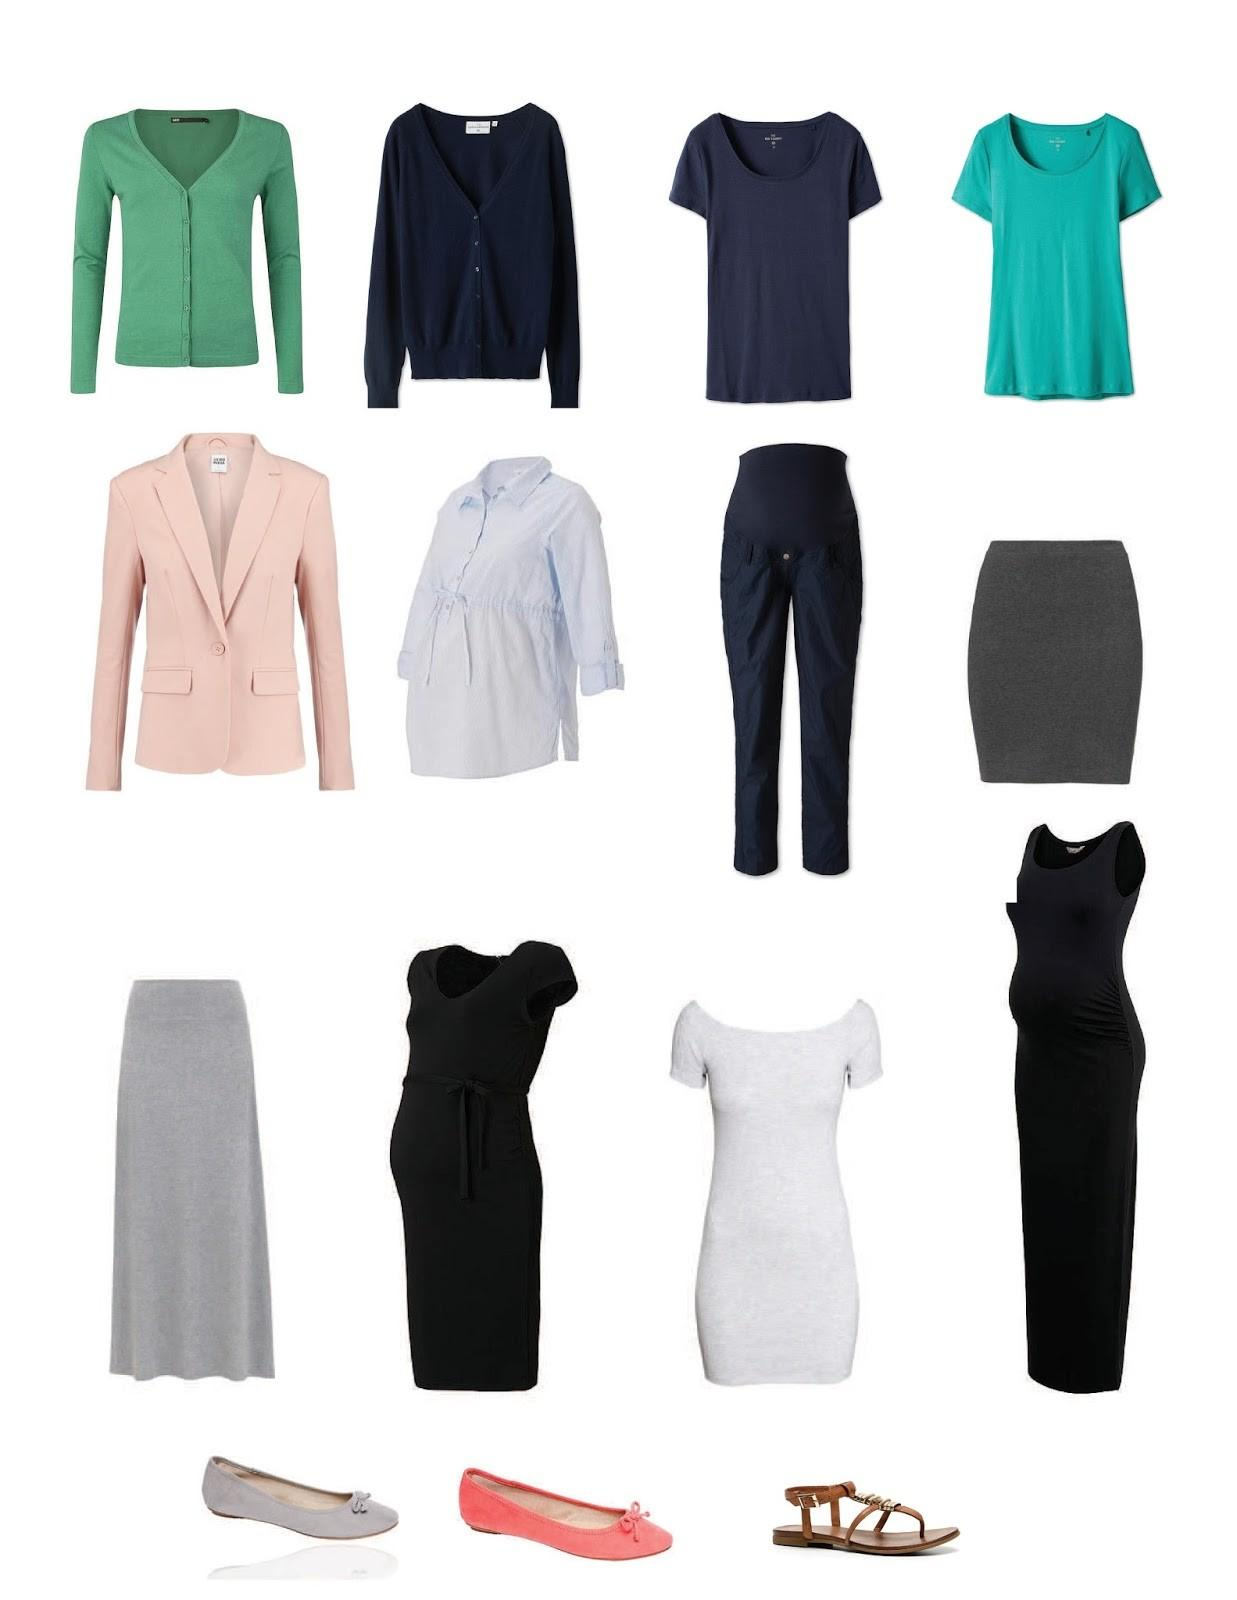 Second Third Trimester Capsule Wardrobe